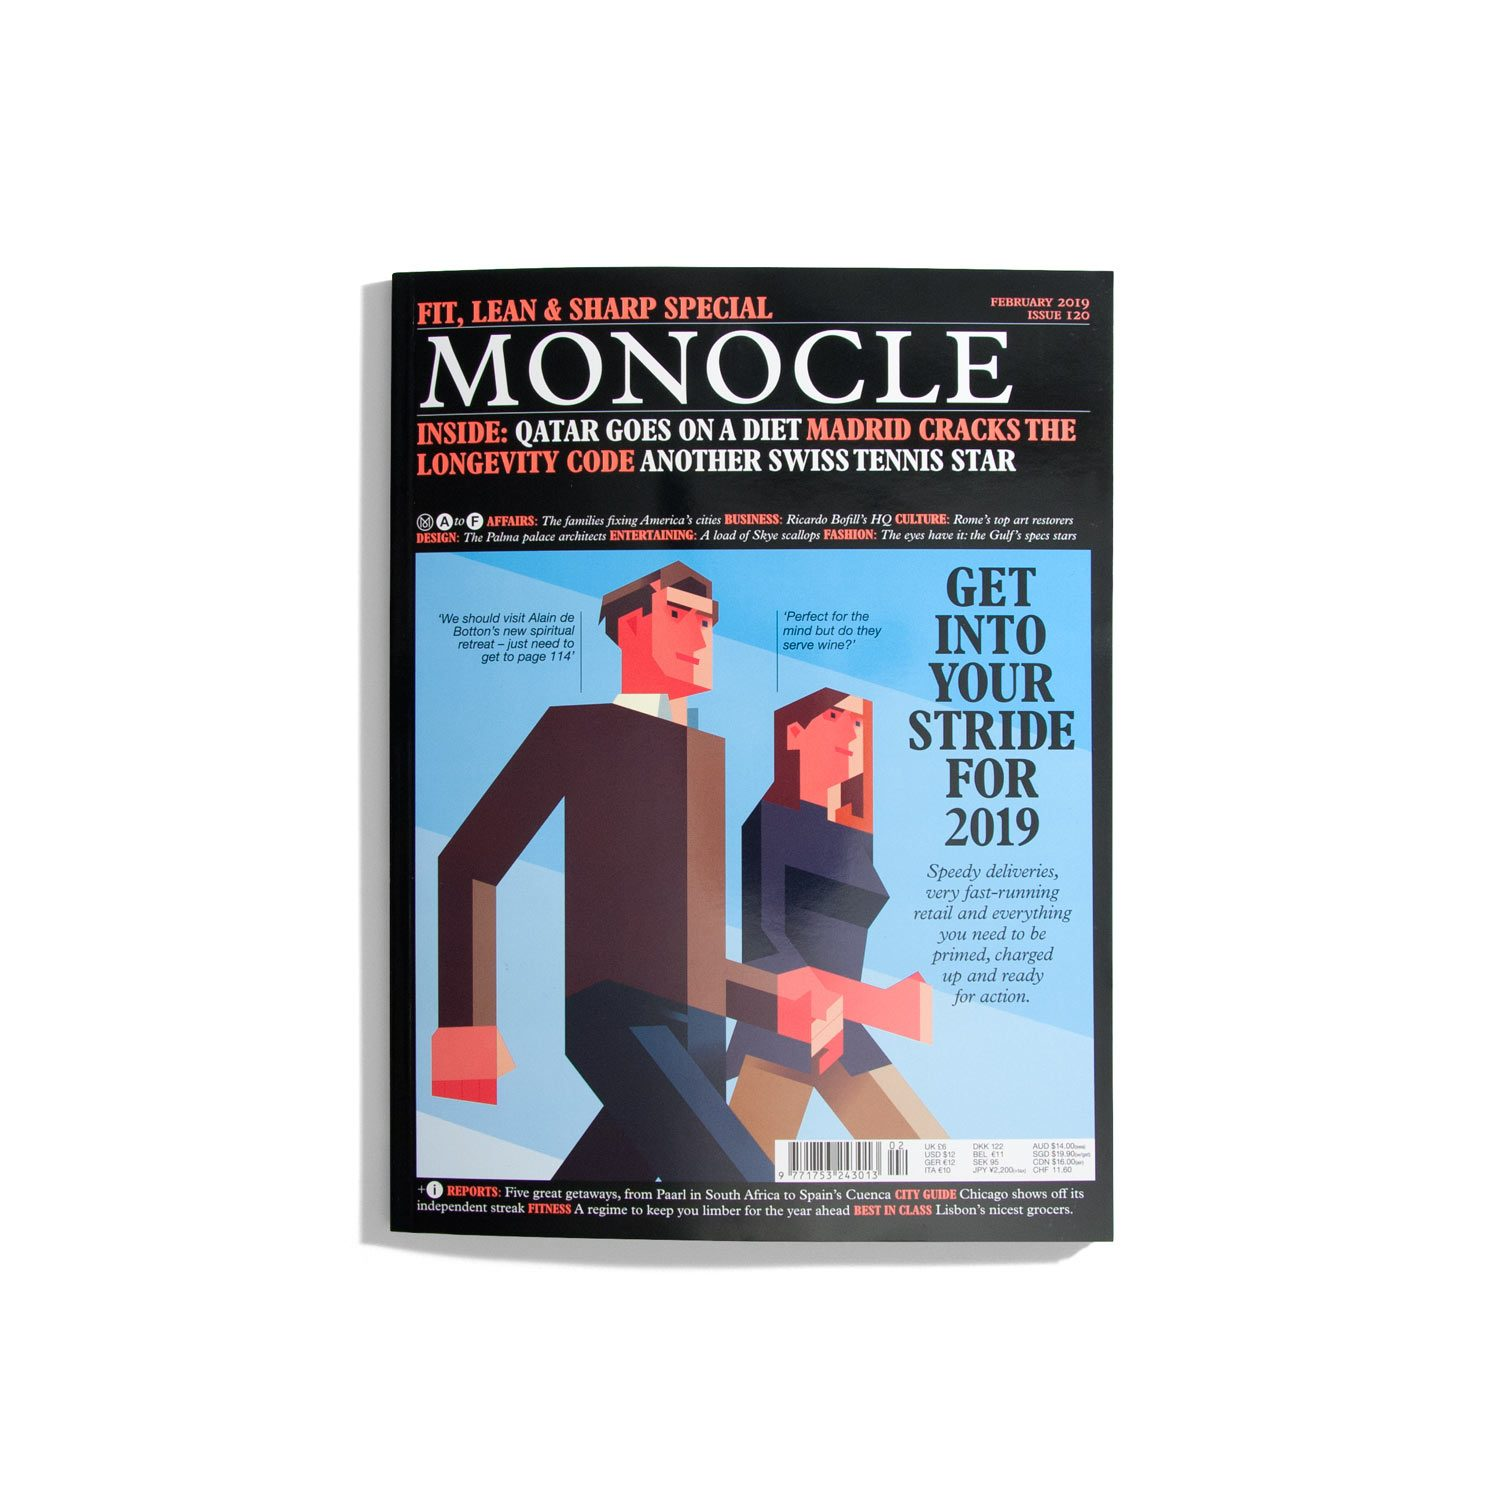 Monocle Feb. 2019 - do you read me?!